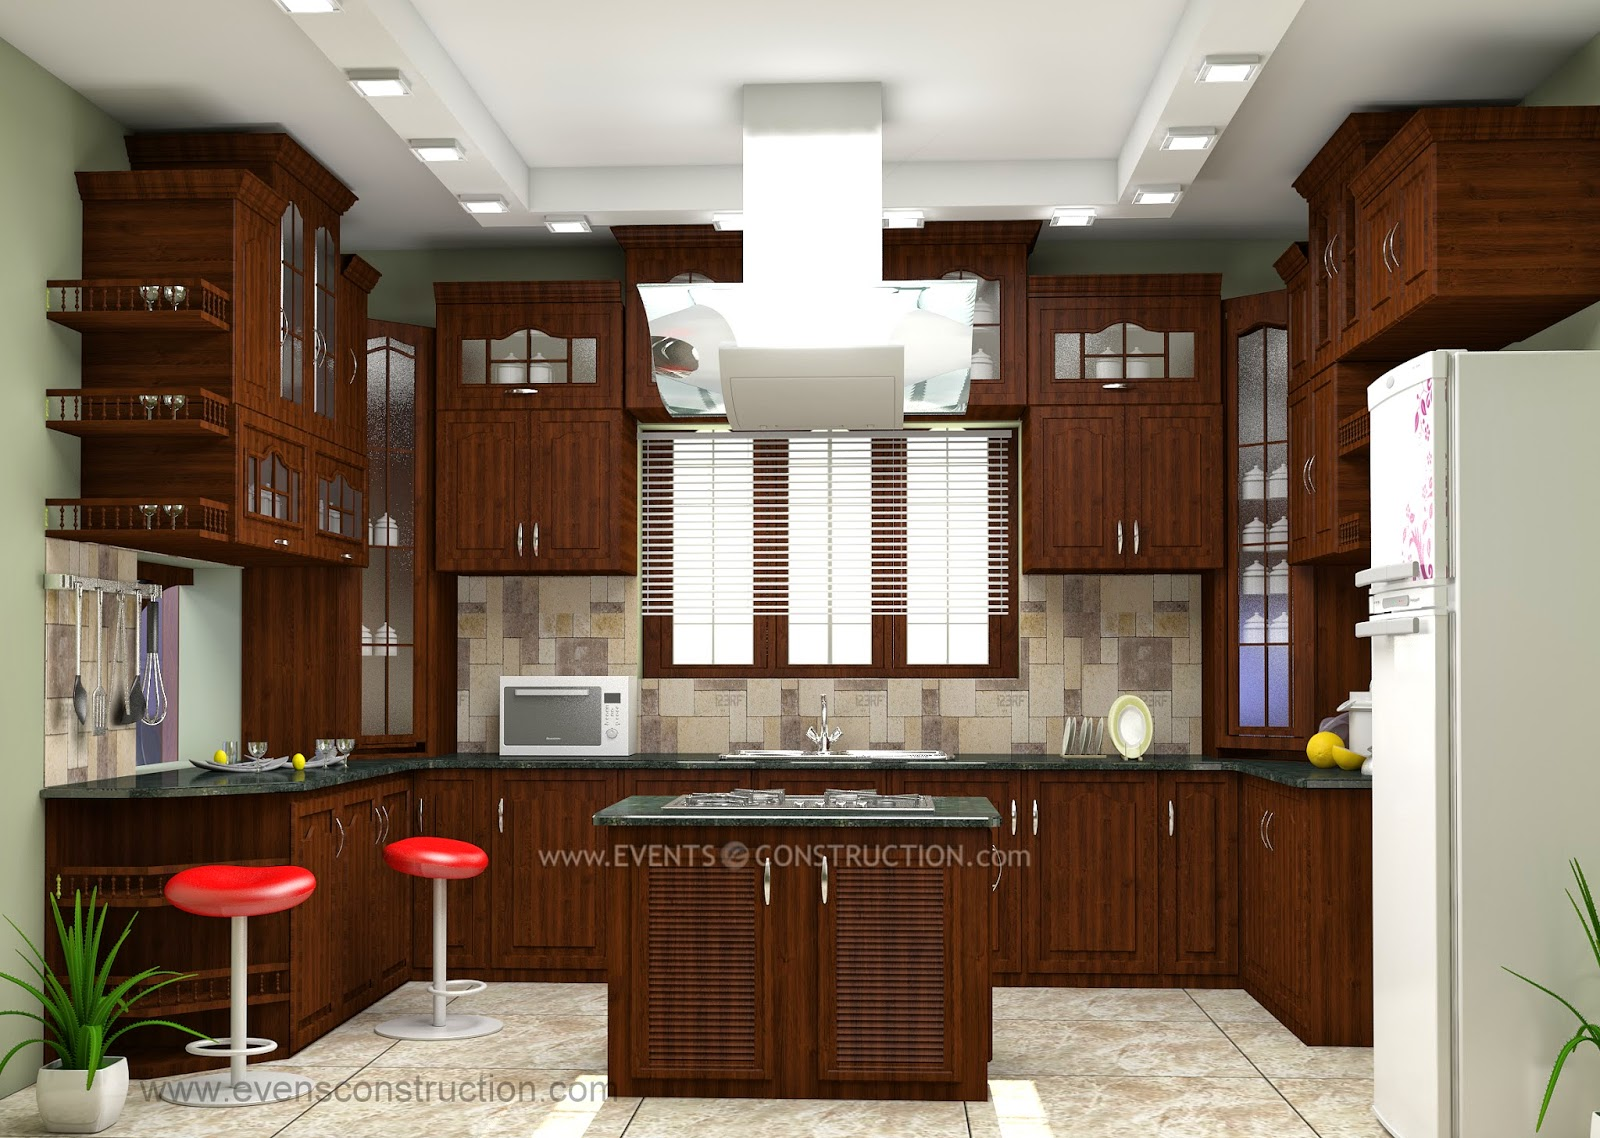 Evens construction pvt ltd july 2014 for Kerala style kitchen photos